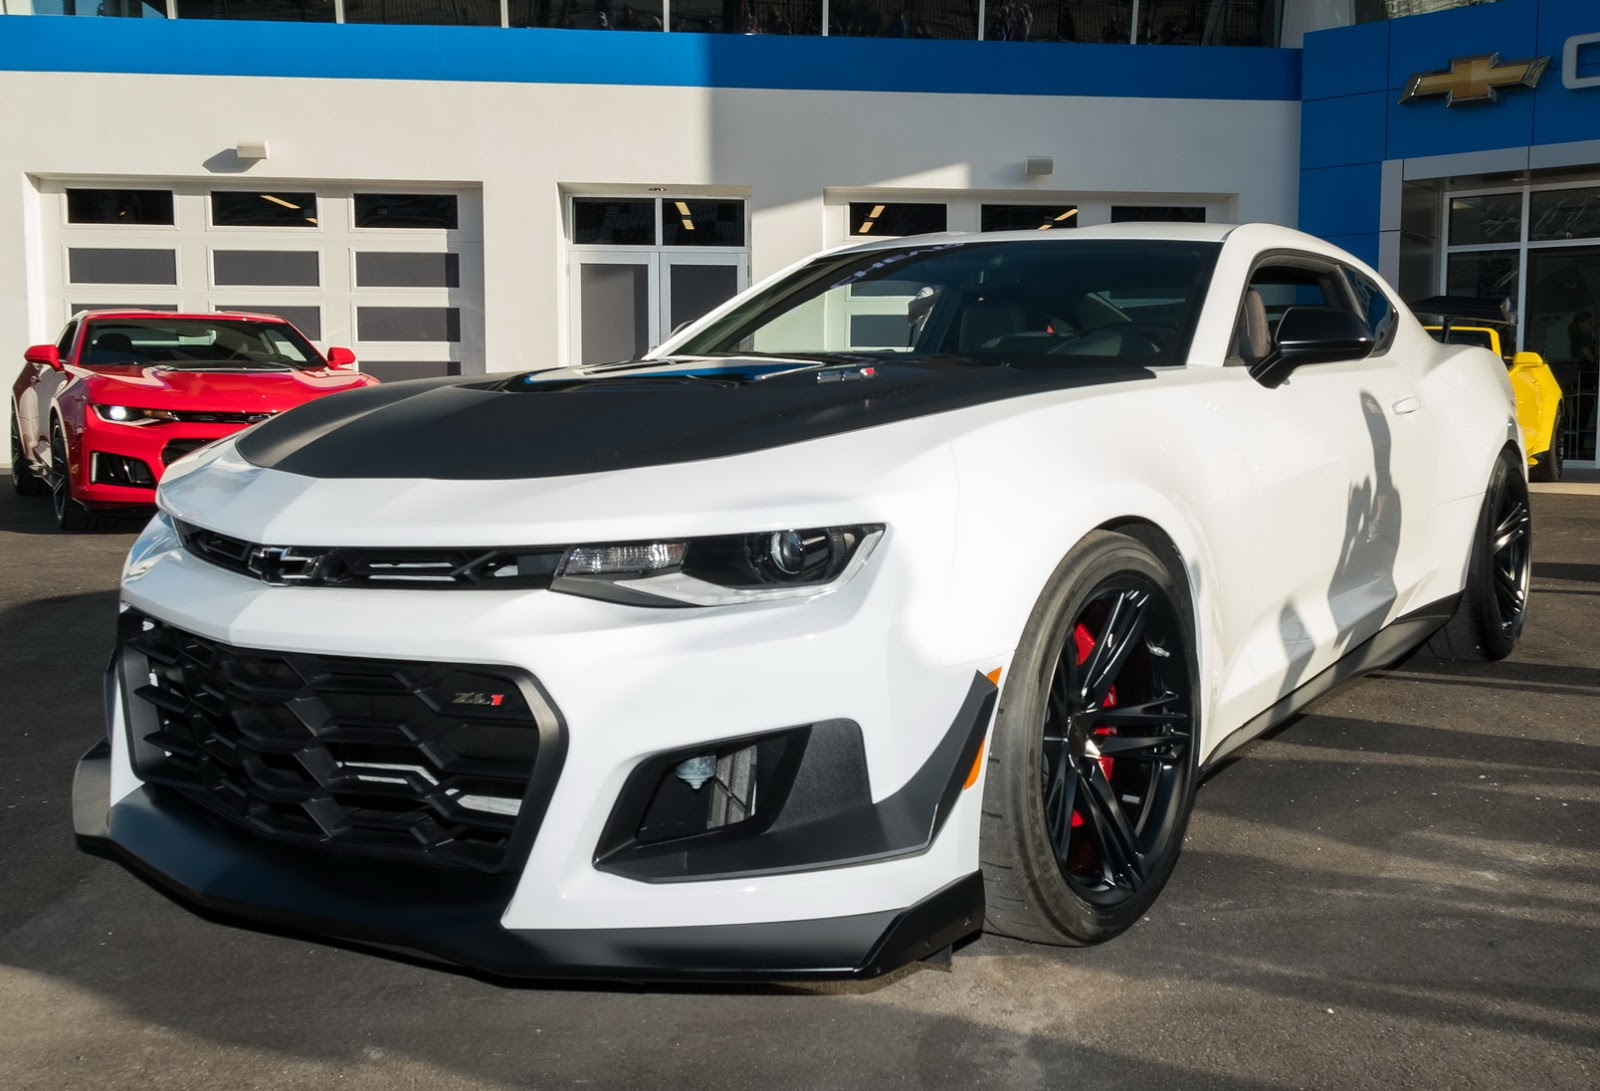 2017 Zl1 For Sale >> 2018 Chevrolet Camaro ZL1 1LE Priced From $69,995, Goes On Sale This Summer - autoevolution